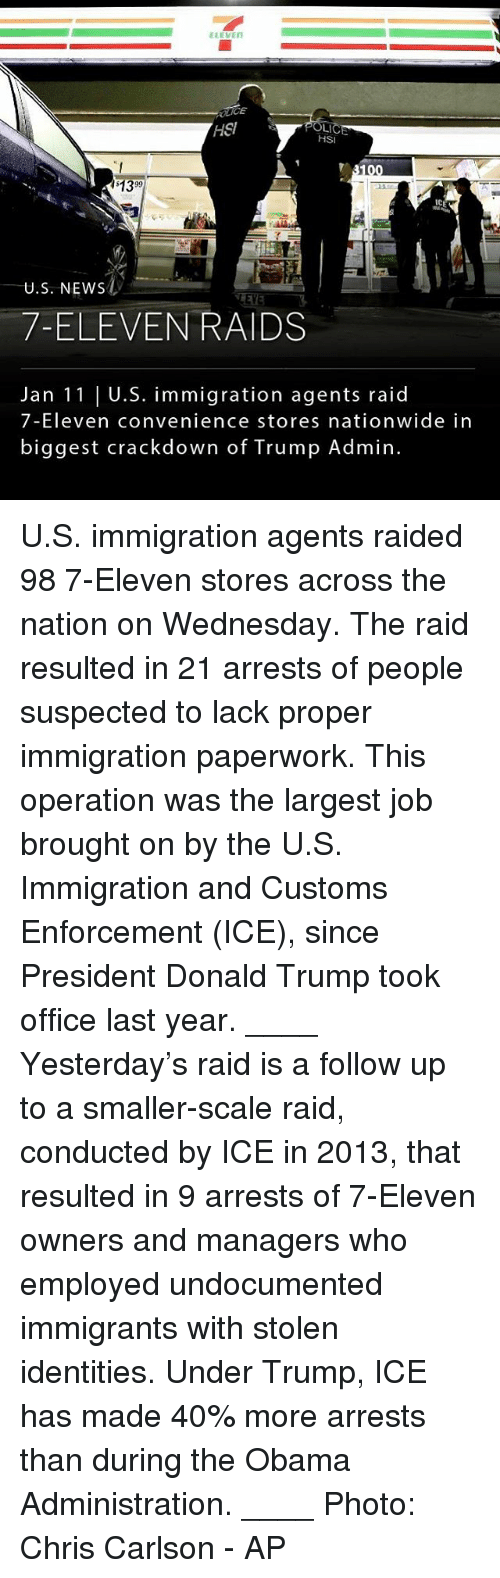 7-Eleven, Donald Trump, and Memes: ELEVEN  HSI  HSI  $1399  IC  U.S. NEWs  EY  7-ELEVEN RAIDS  Jan 11 | U.S. immigration agents raid  7-Eleven convenience stores nationwide in  biggest crackdown of Trump Admin U.S. immigration agents raided 98 7-Eleven stores across the nation on Wednesday. The raid resulted in 21 arrests of people suspected to lack proper immigration paperwork. This operation was the largest job brought on by the U.S. Immigration and Customs Enforcement (ICE), since President Donald Trump took office last year. ____ Yesterday's raid is a follow up to a smaller-scale raid, conducted by ICE in 2013, that resulted in 9 arrests of 7-Eleven owners and managers who employed undocumented immigrants with stolen identities. Under Trump, ICE has made 40% more arrests than during the Obama Administration. ____ Photo: Chris Carlson - AP